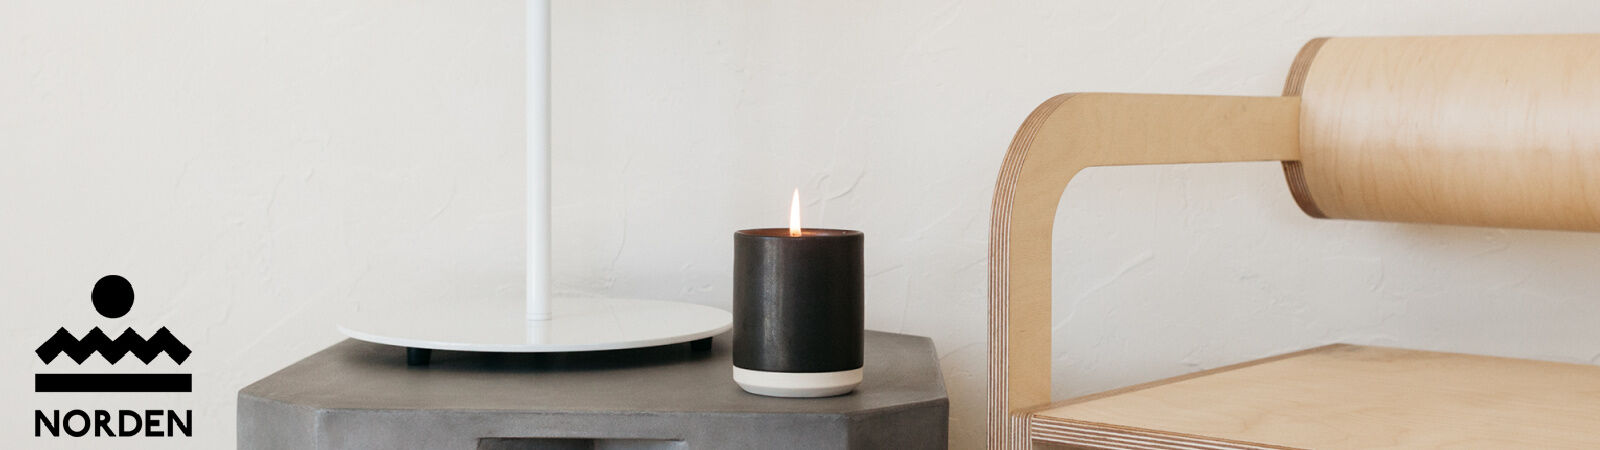 Norden Goods Ceramic Scented Candle